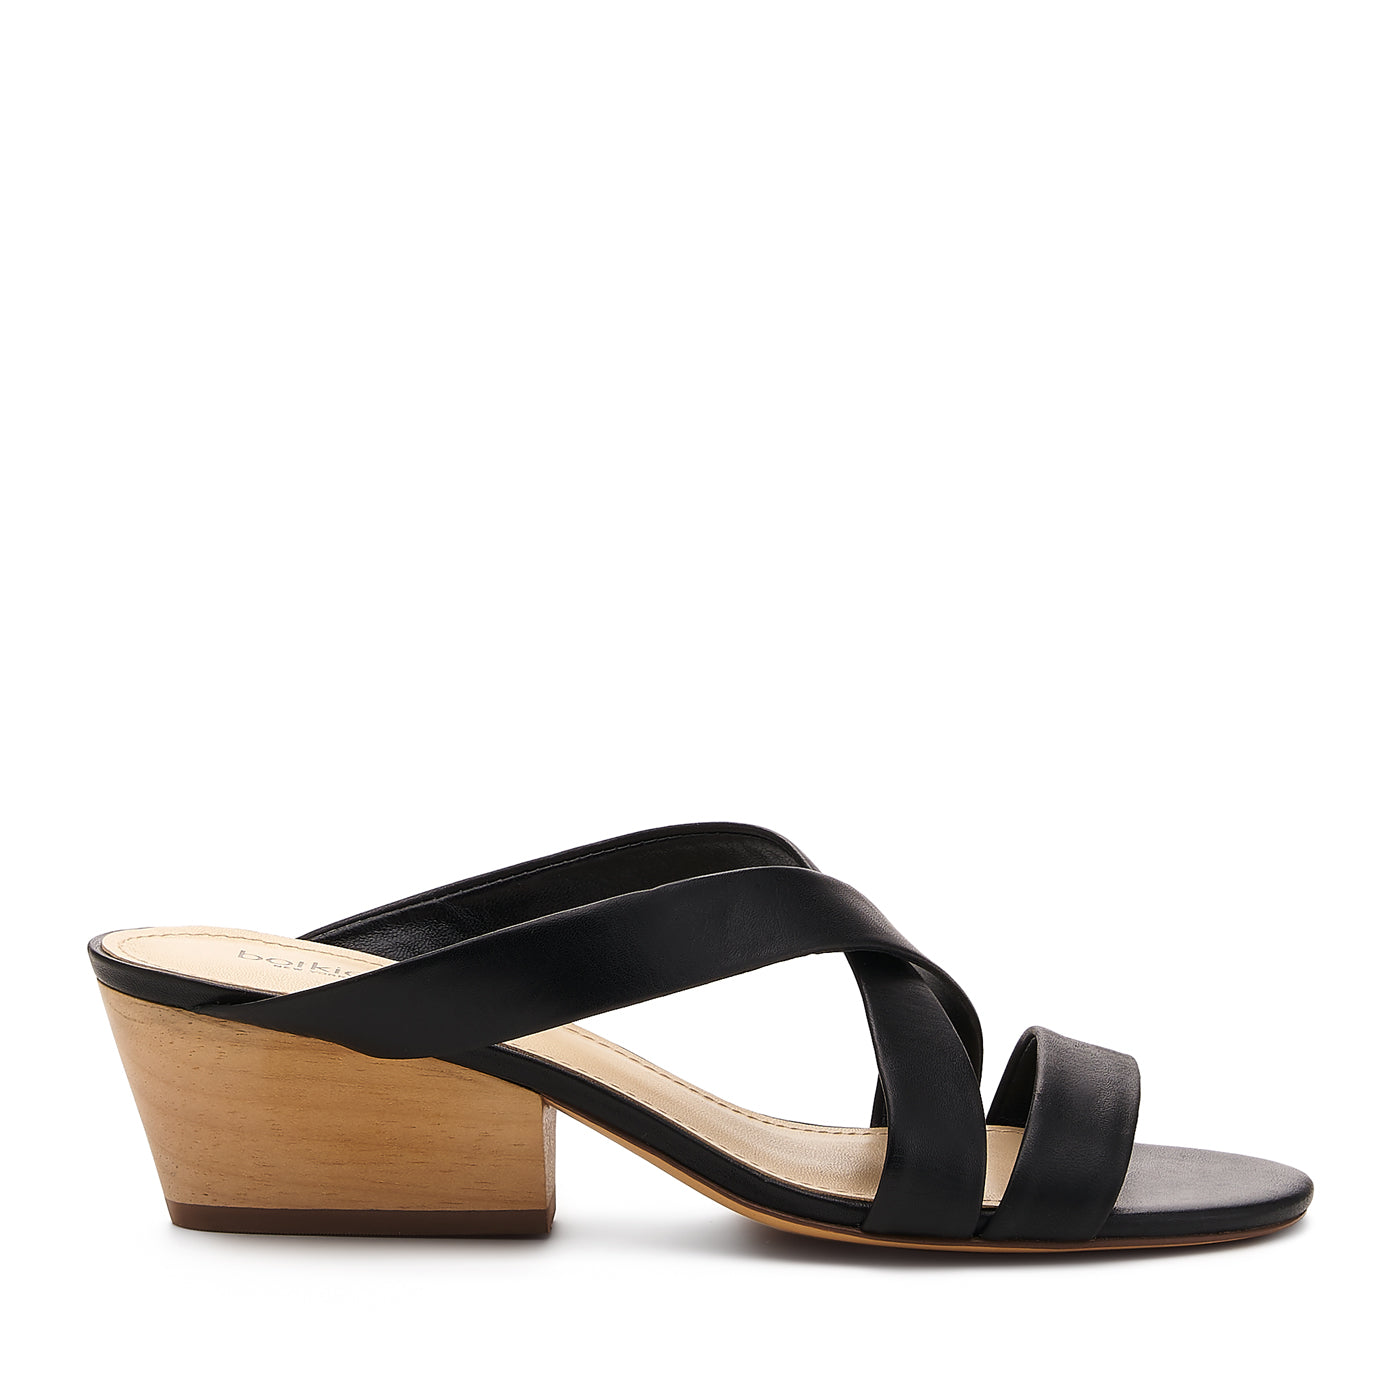 botkier cecile wood low heel strappy slide sandal in black